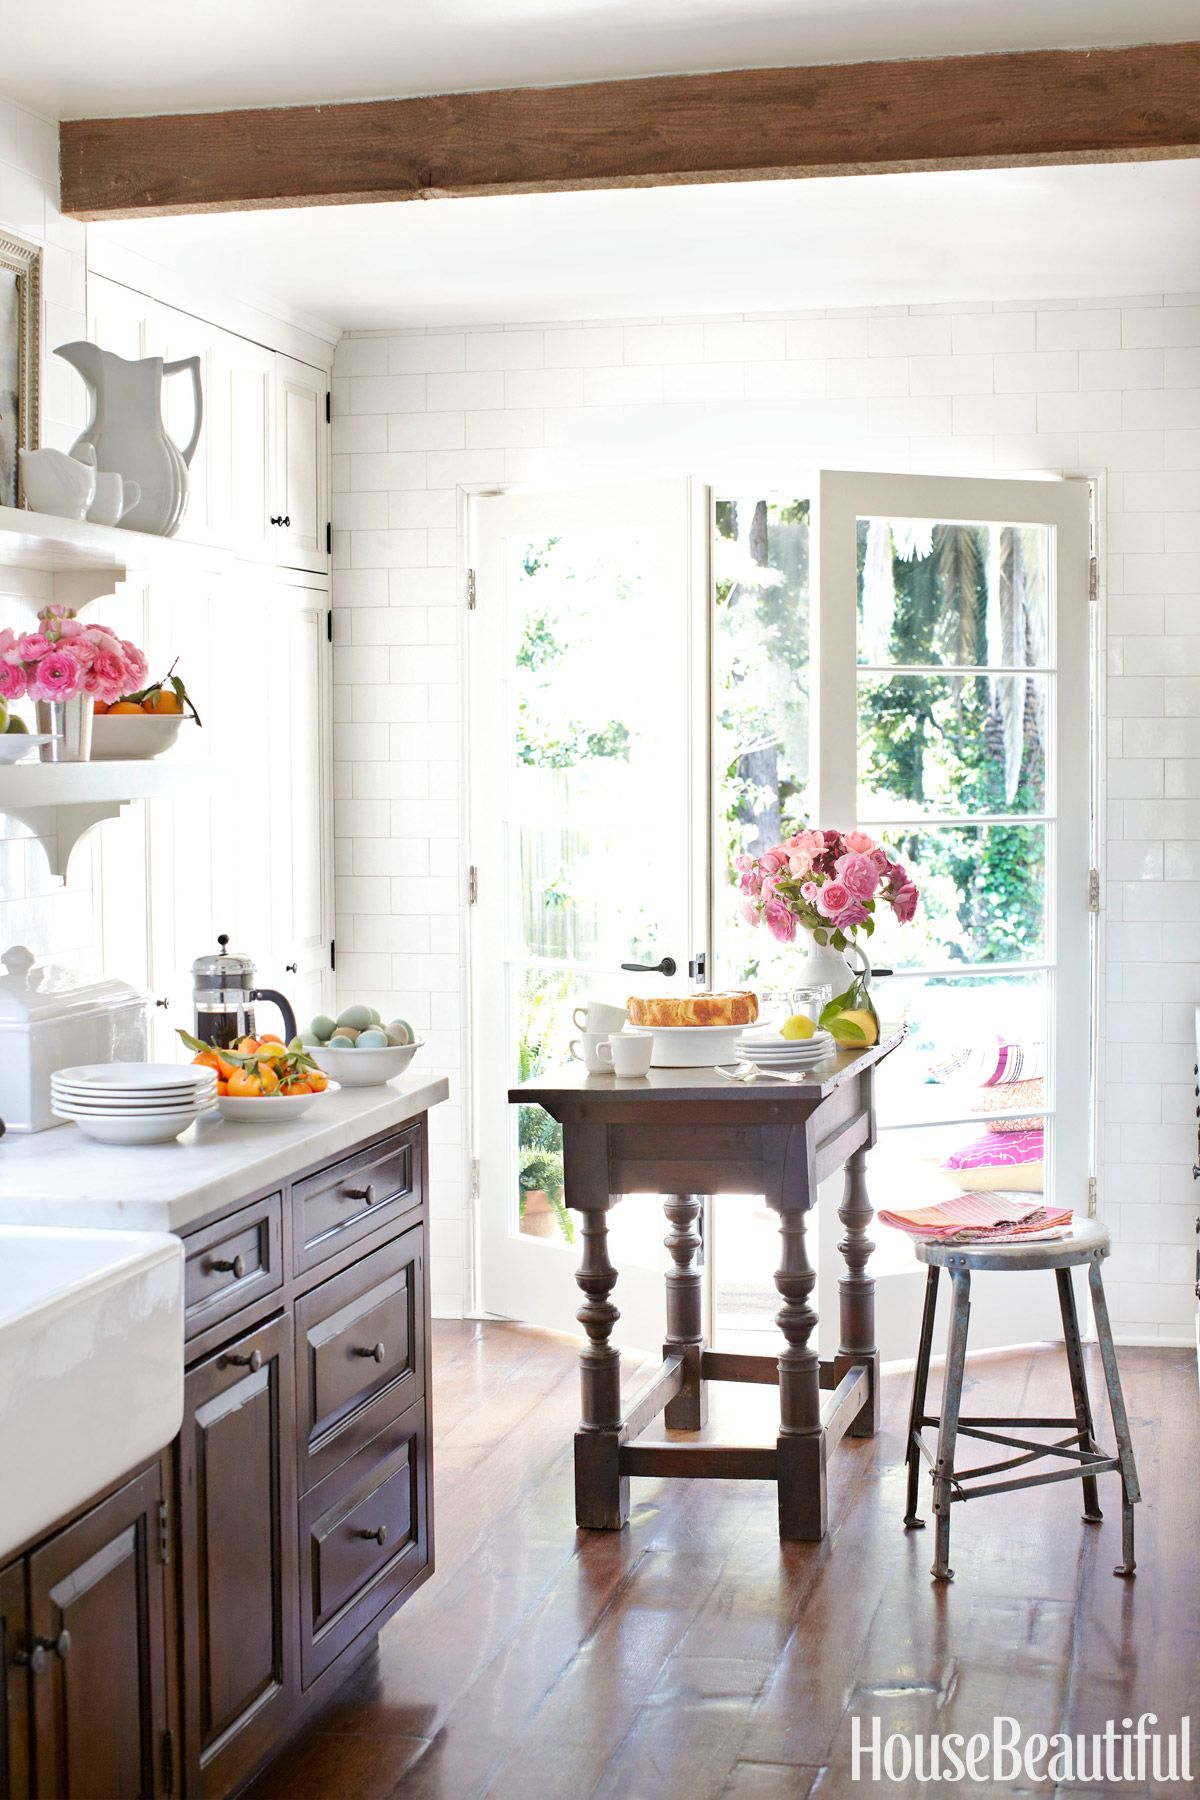 30 Best Small Kitchen Design Ideas   Decorating Solutions For Small Kitchens